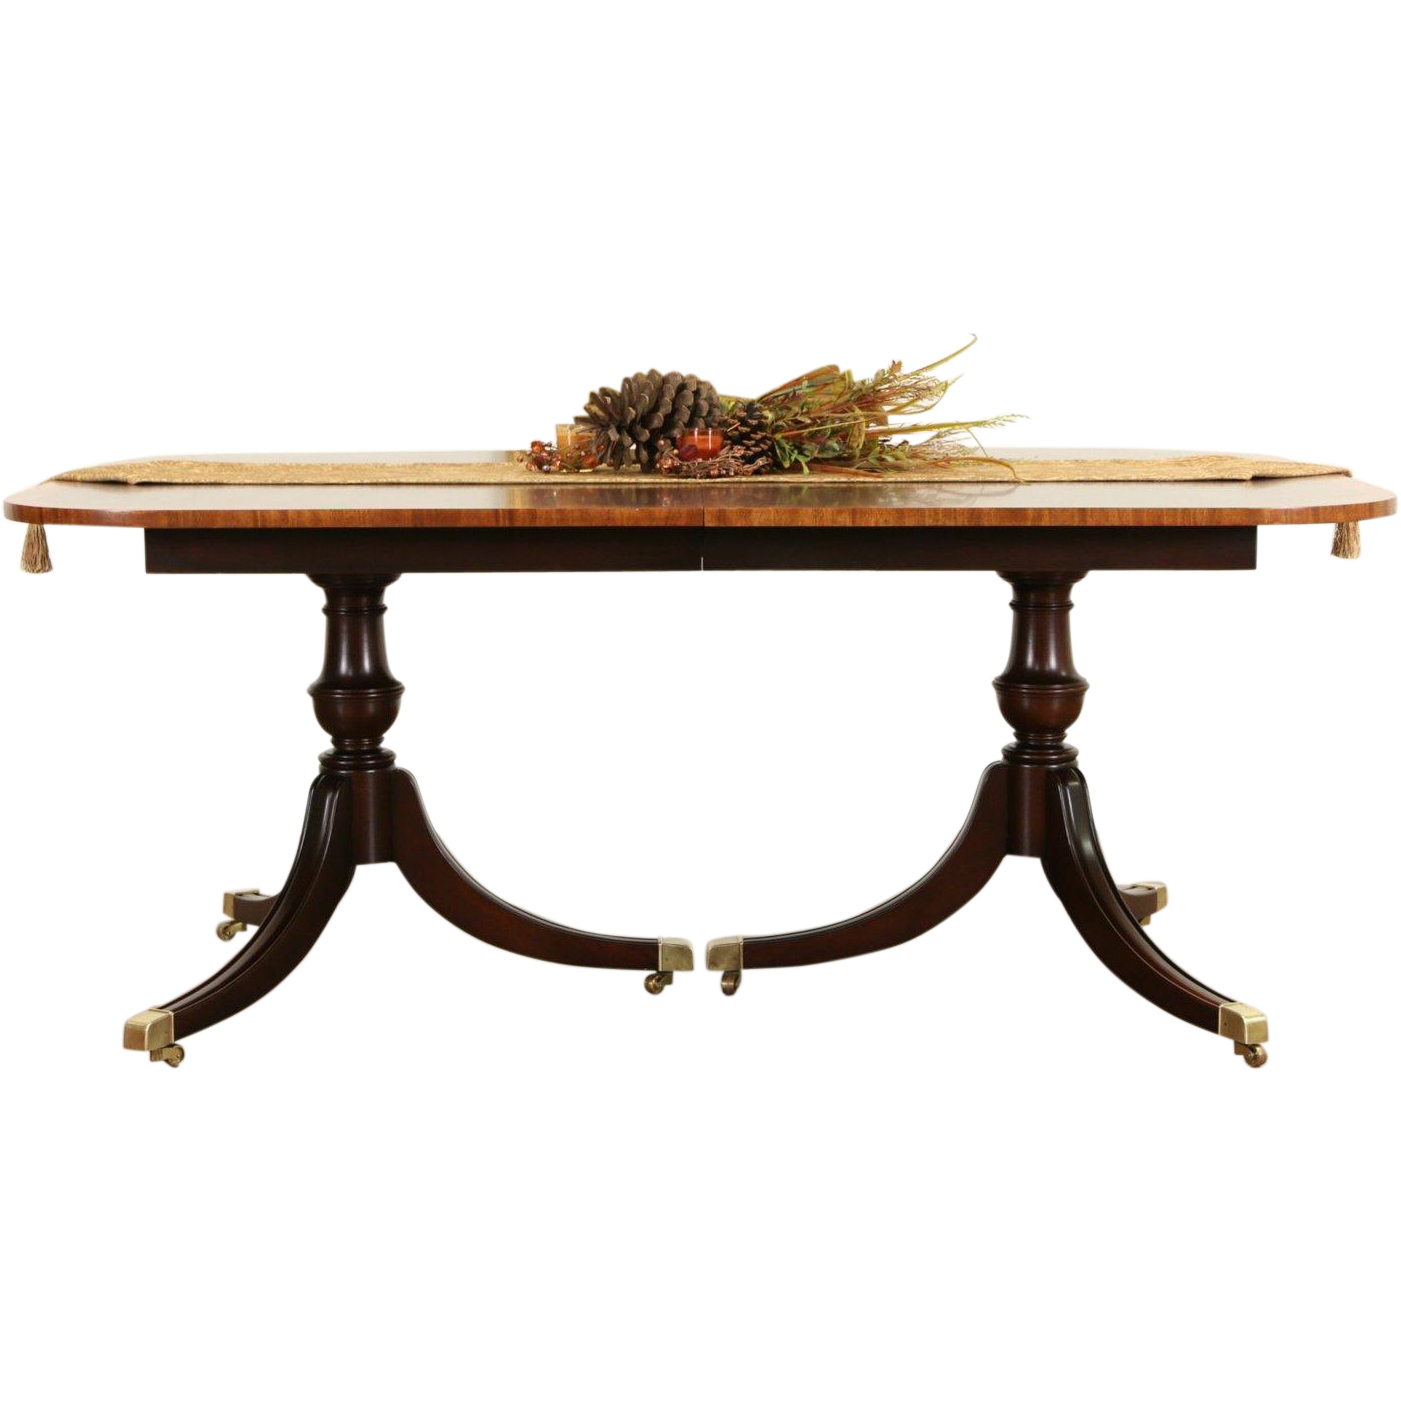 Banded Mahogany Vintage Double Pedestal Dining Table, No Leaves